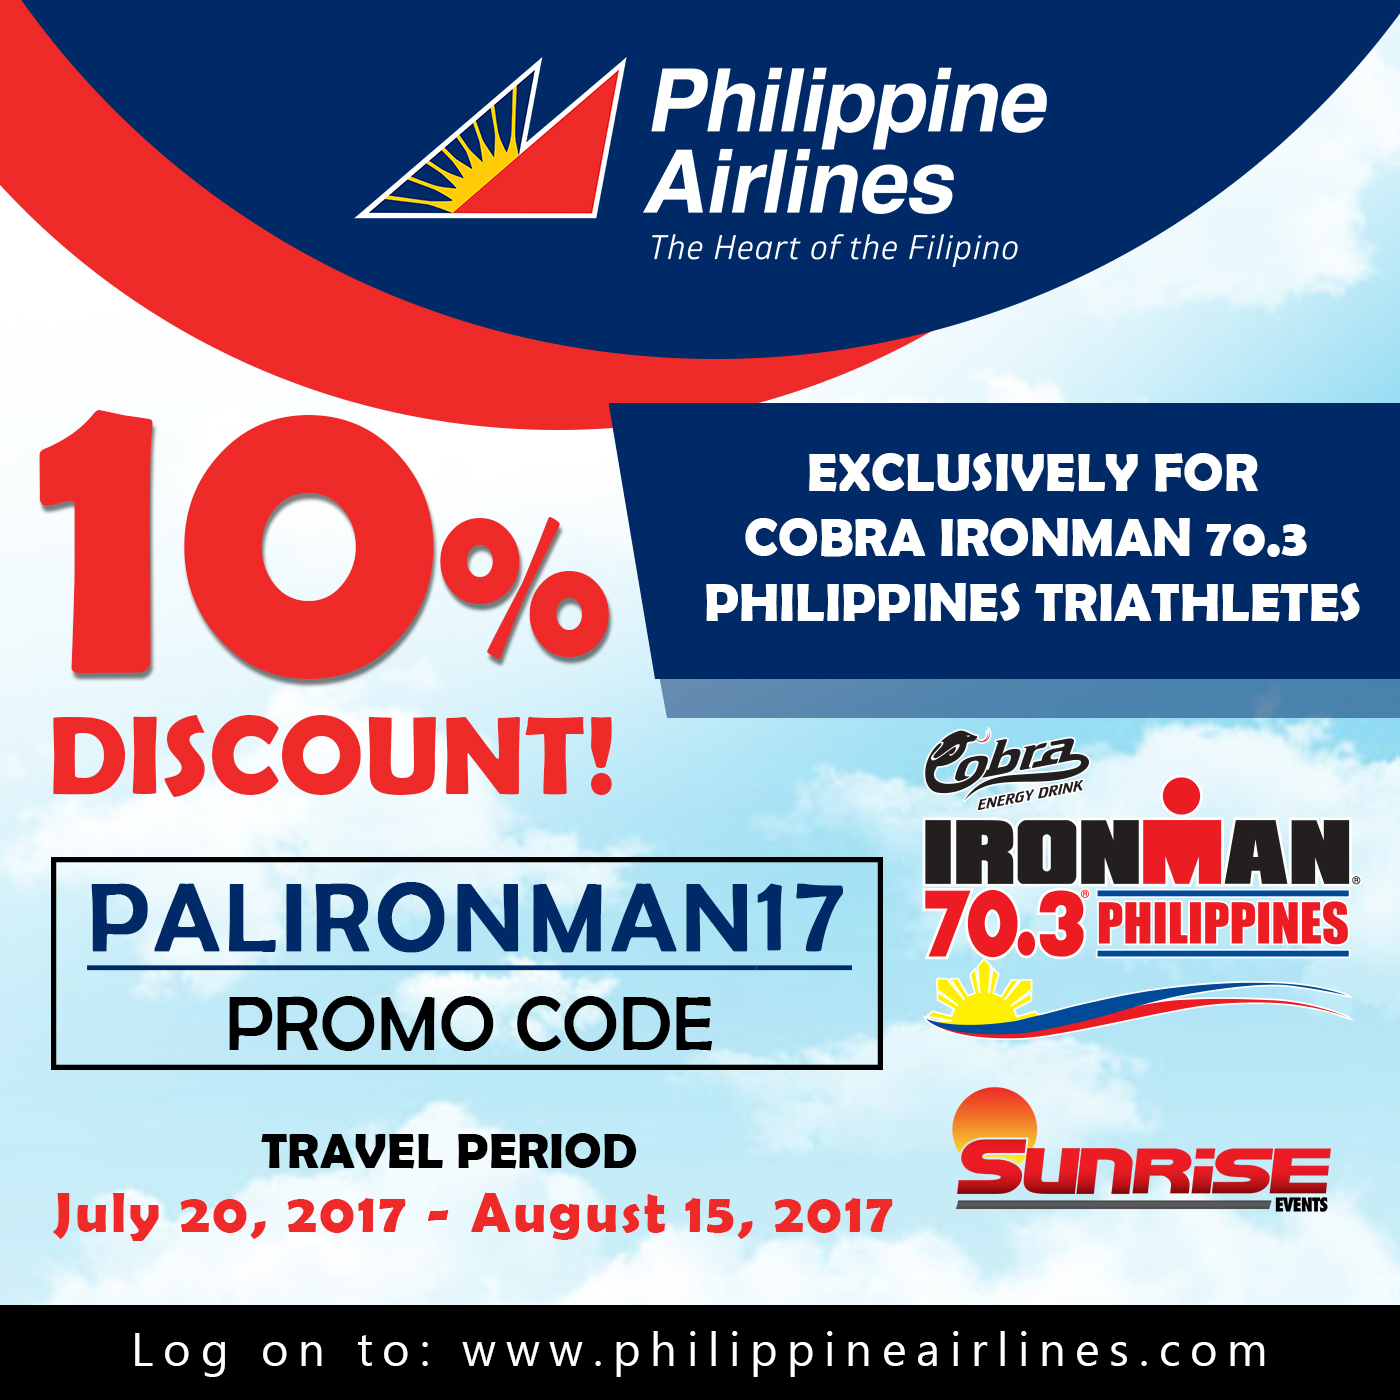 Ironman coupon code